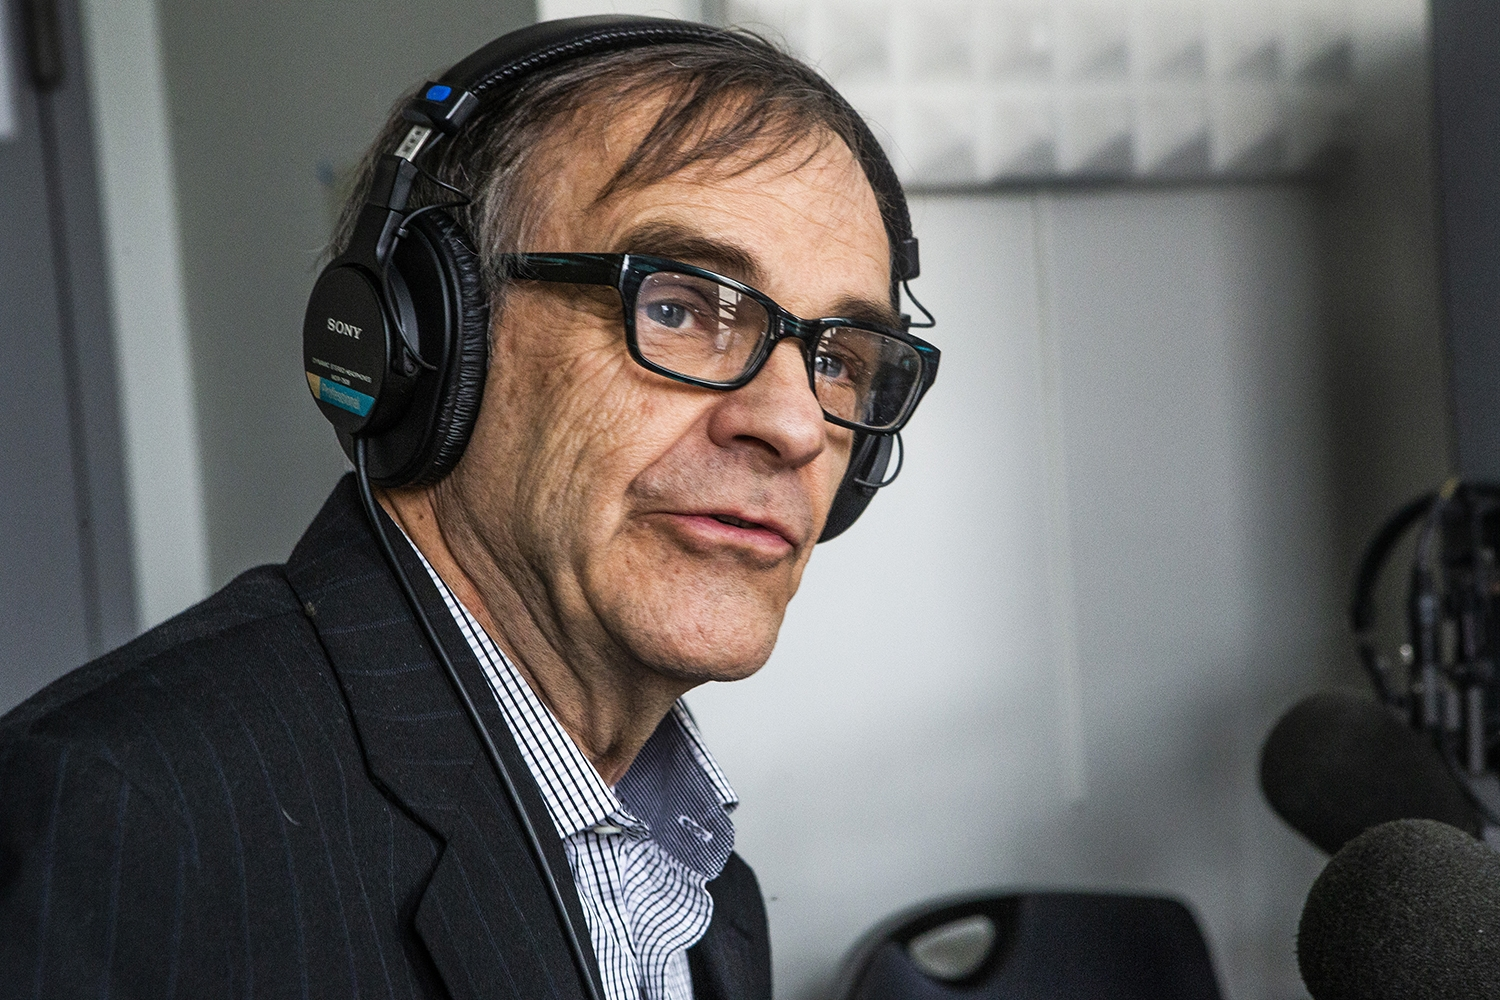 John Tinker discusses the aspects of free speech during an interview with the Tinkers at the KRUI studio on Tuesday, February 26, 2019. John, along with his sister Mary Beth, wore black arm bands to school in protest of the Vietnam War, leading to the Tinker vs. Des Moines court case in 1969.(Katina Zentz/The Daily Iowan)